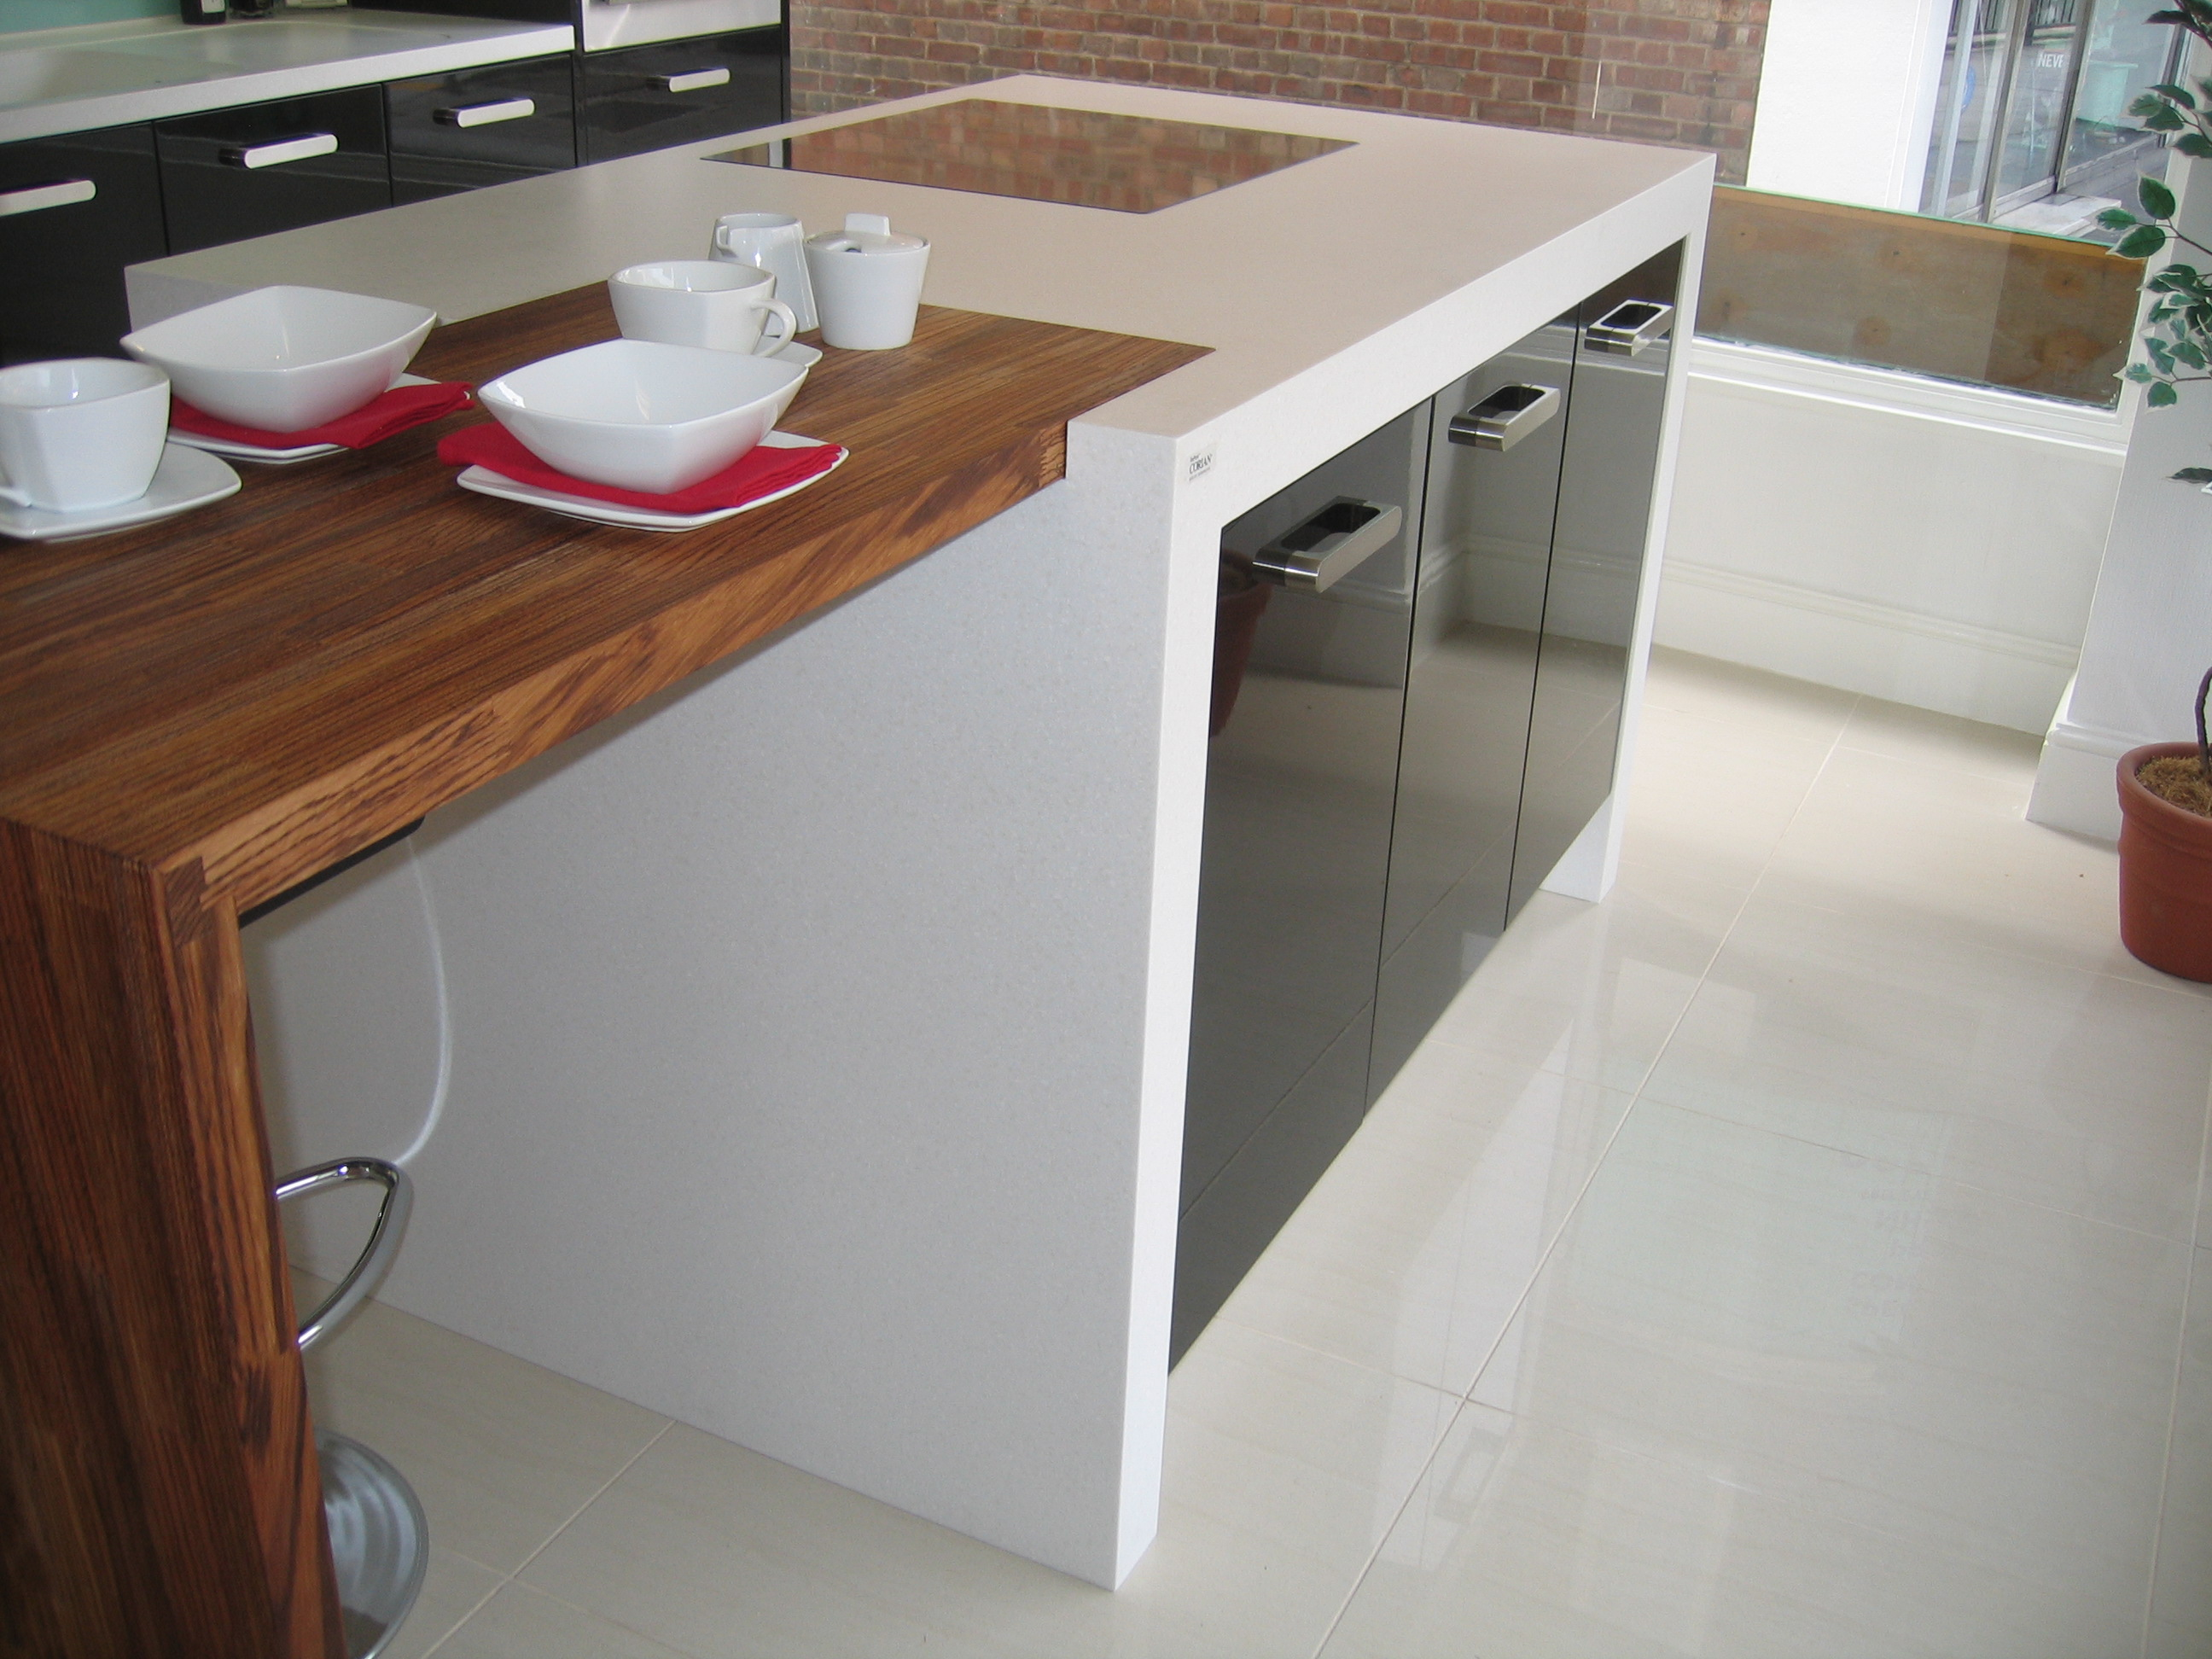 Corian and Hard wood make a very good combination